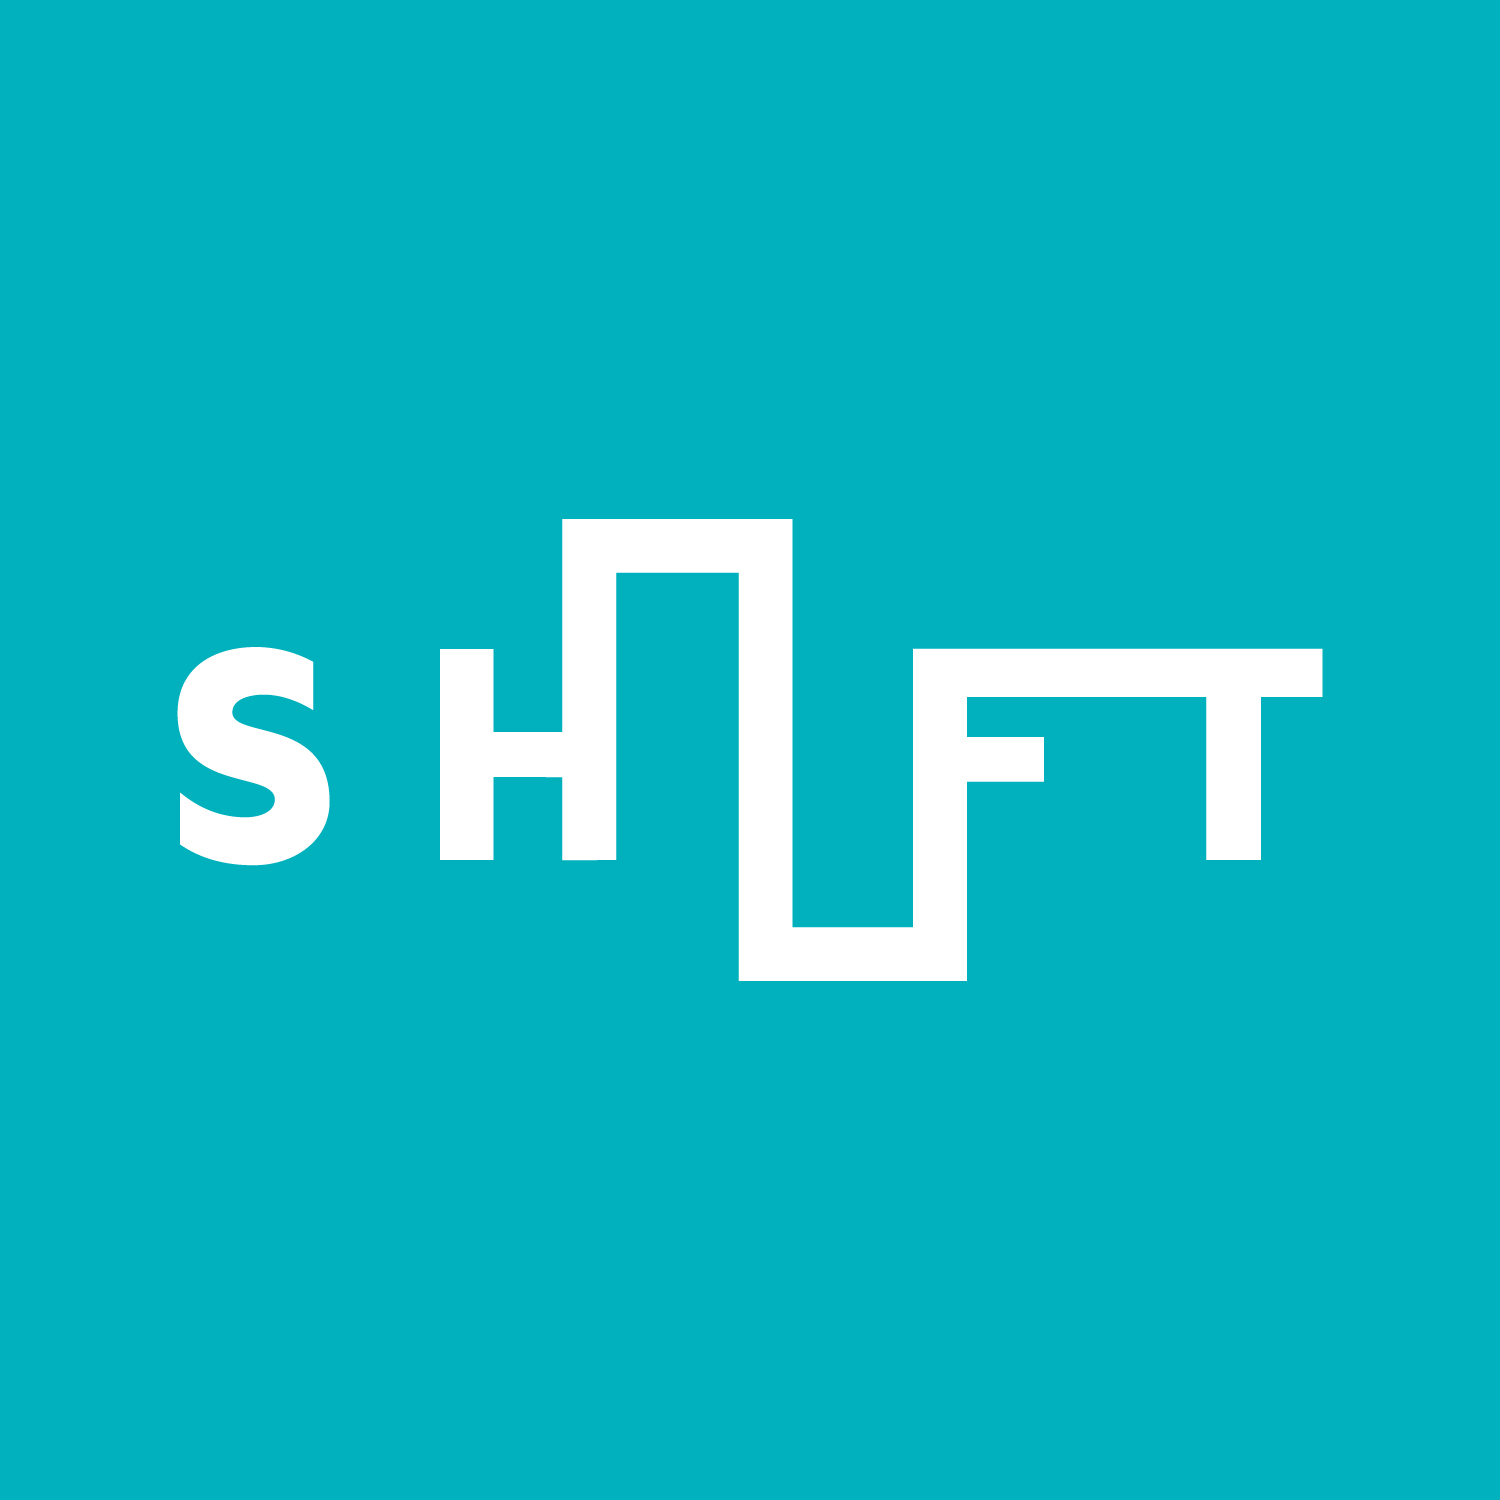 SHIFT capital philadelphia impact developer